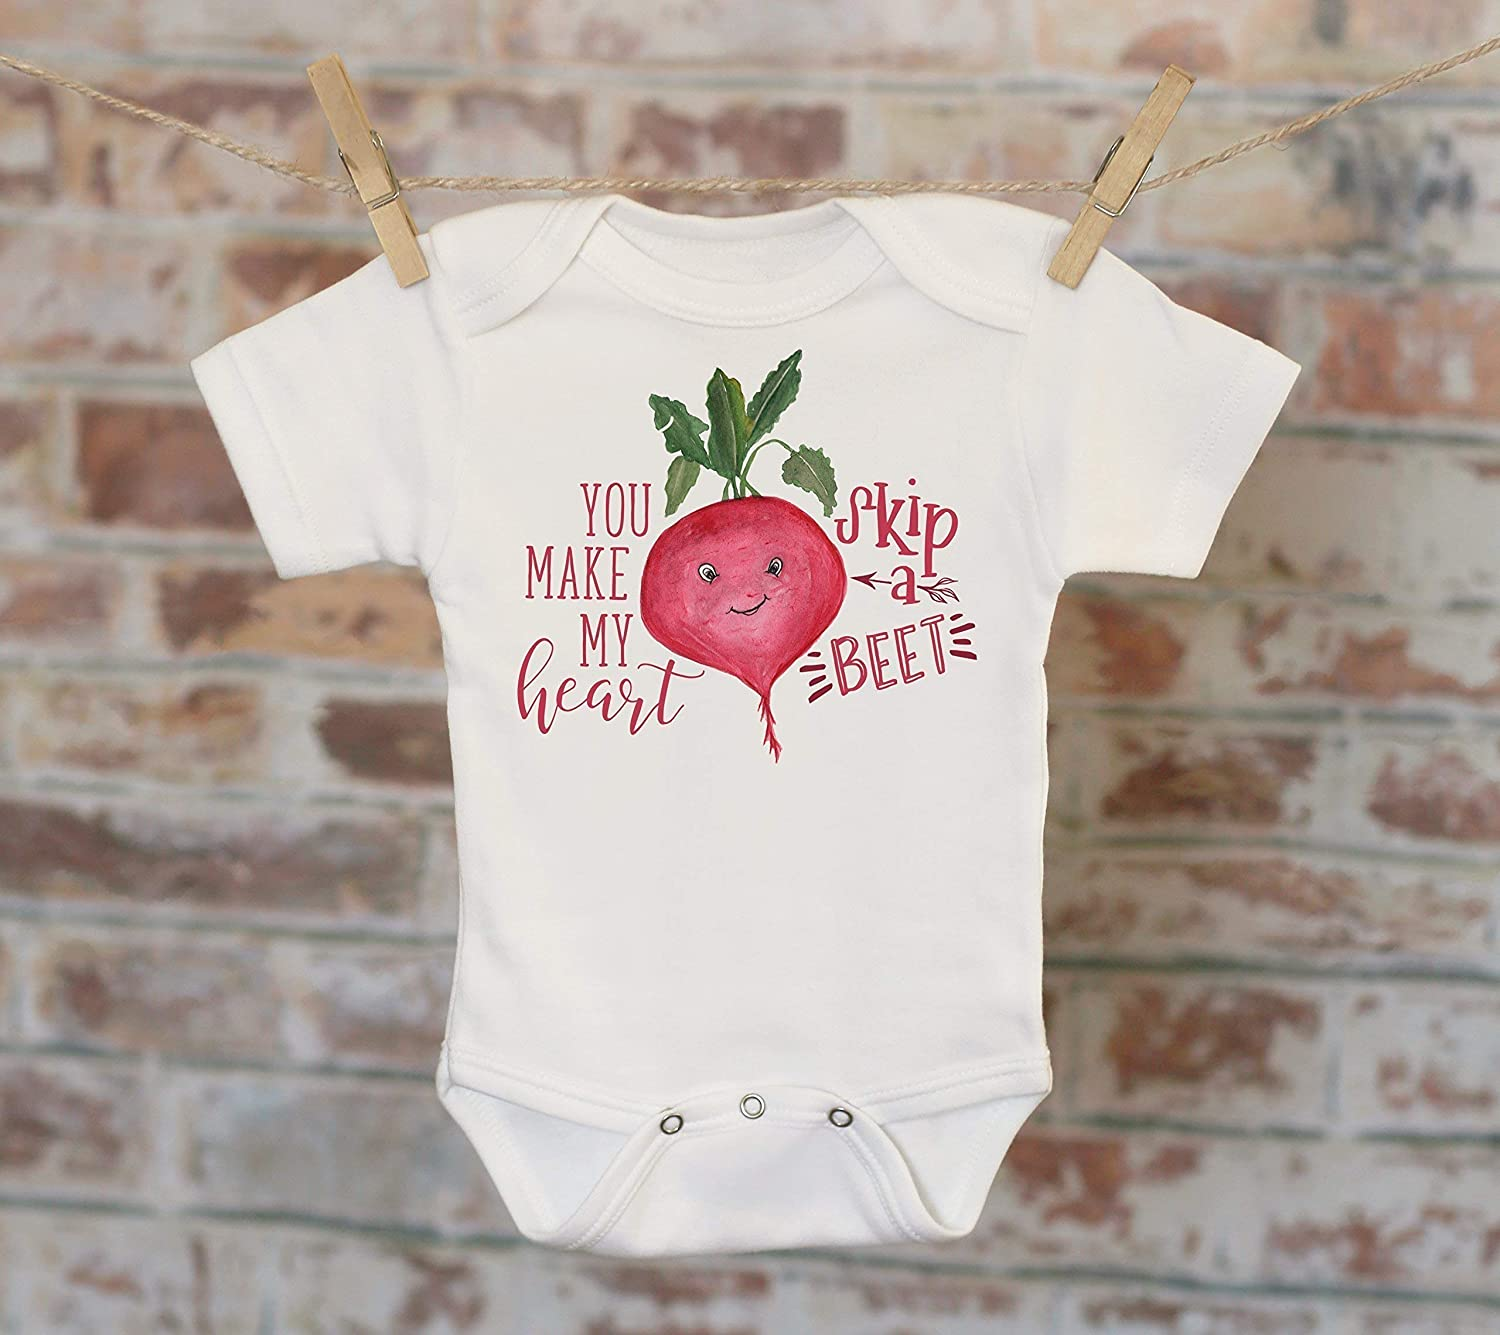 You Make My Heart Skip A Beet Onesie®, Food Onesie, Funny Onesie, Cute Baby Bodysuit, Cute Onesie, Boho Baby Onesie